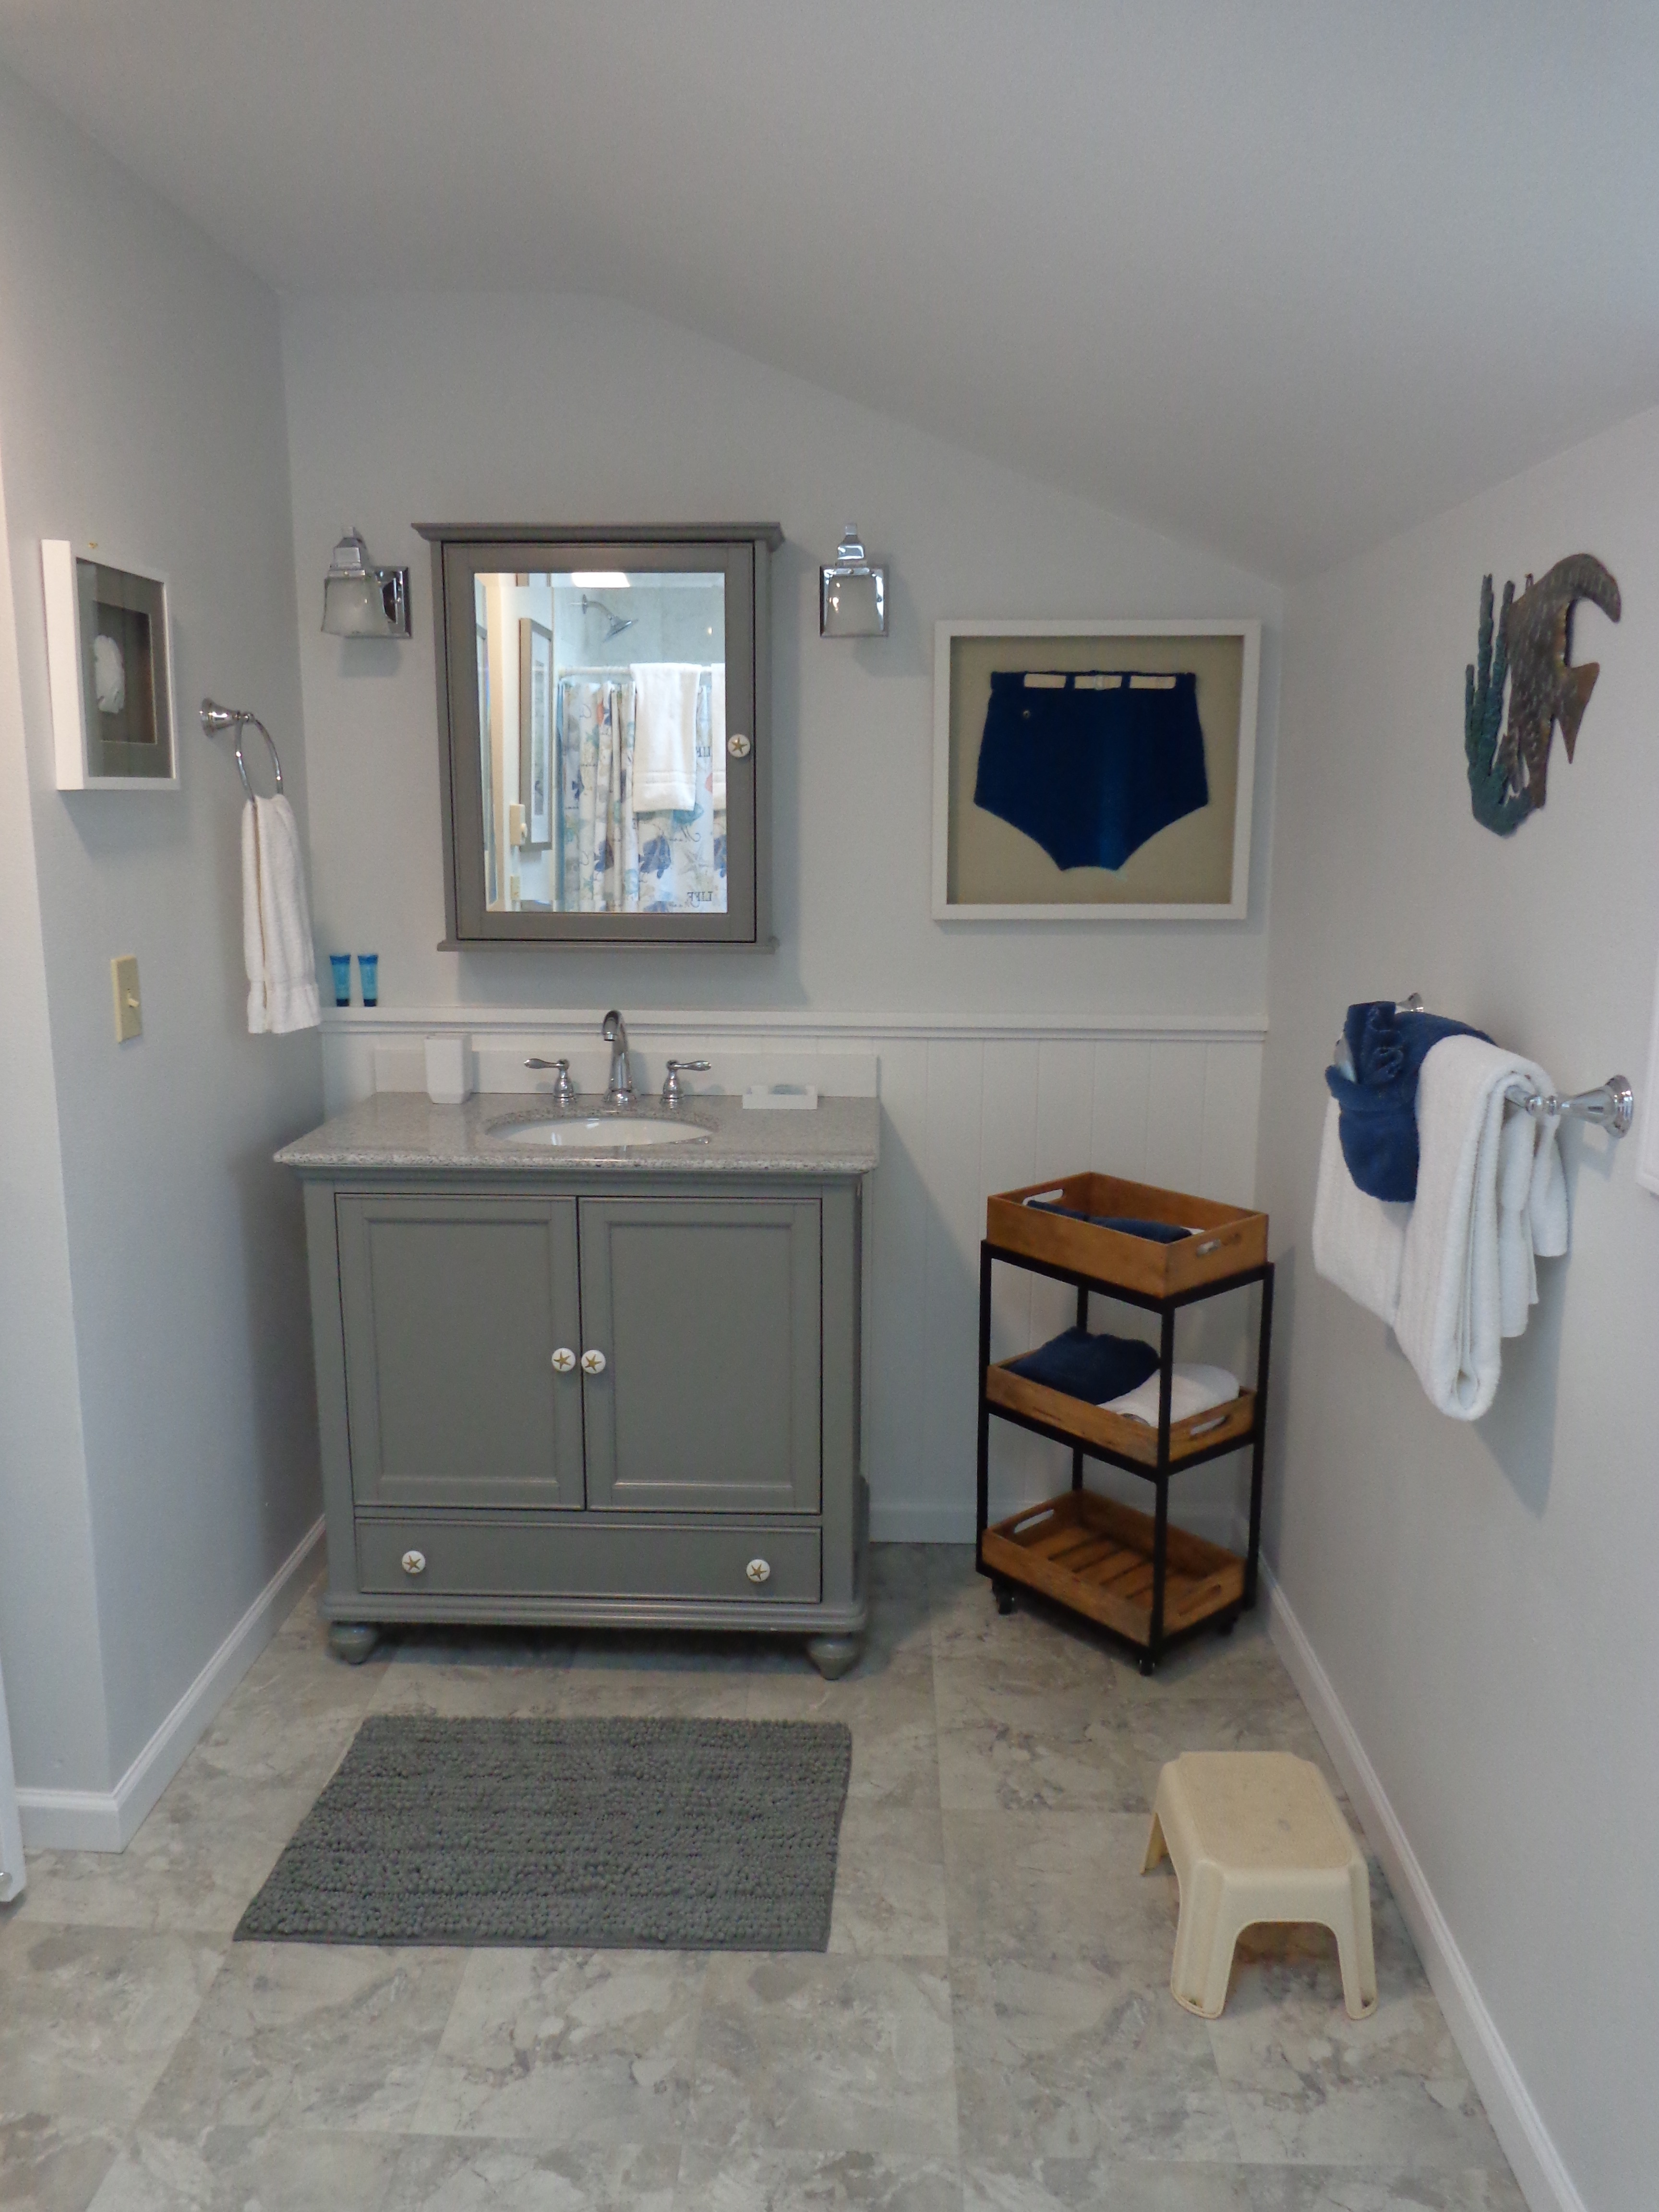 inn beach overview oregon rentals comforter comfort review sand dollar vacation seaside booking average